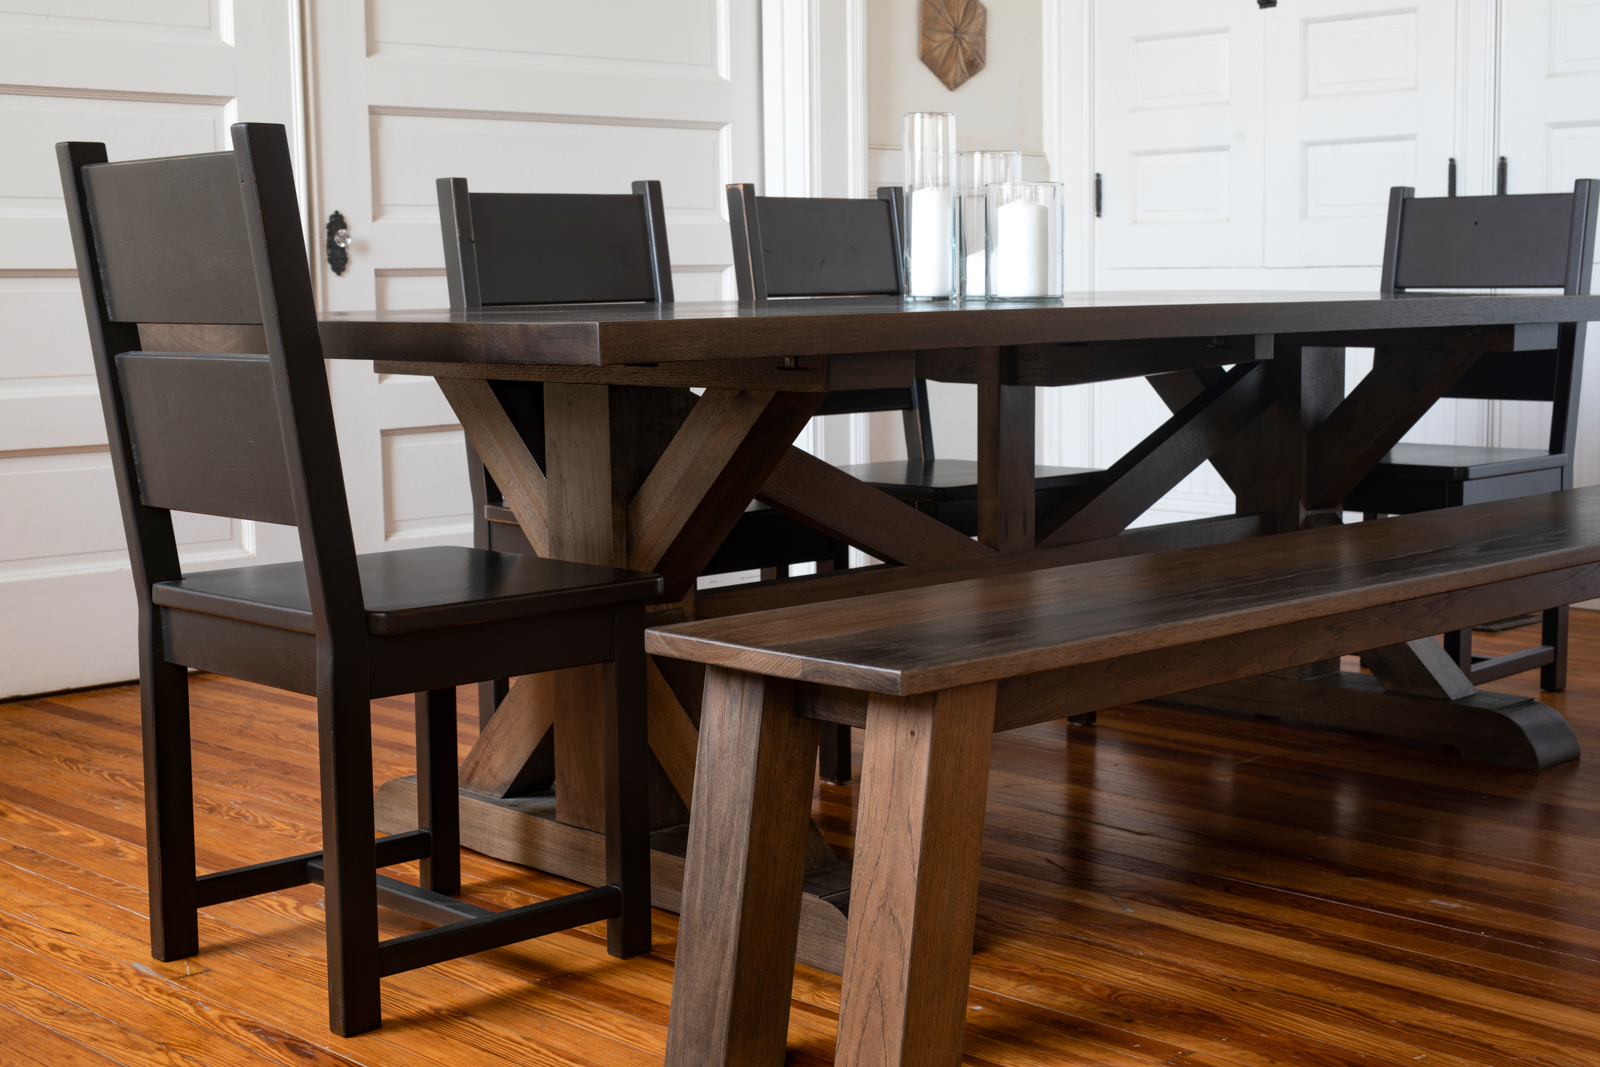 Sawyer Table Pedestal Dining Room Tables In Riverside